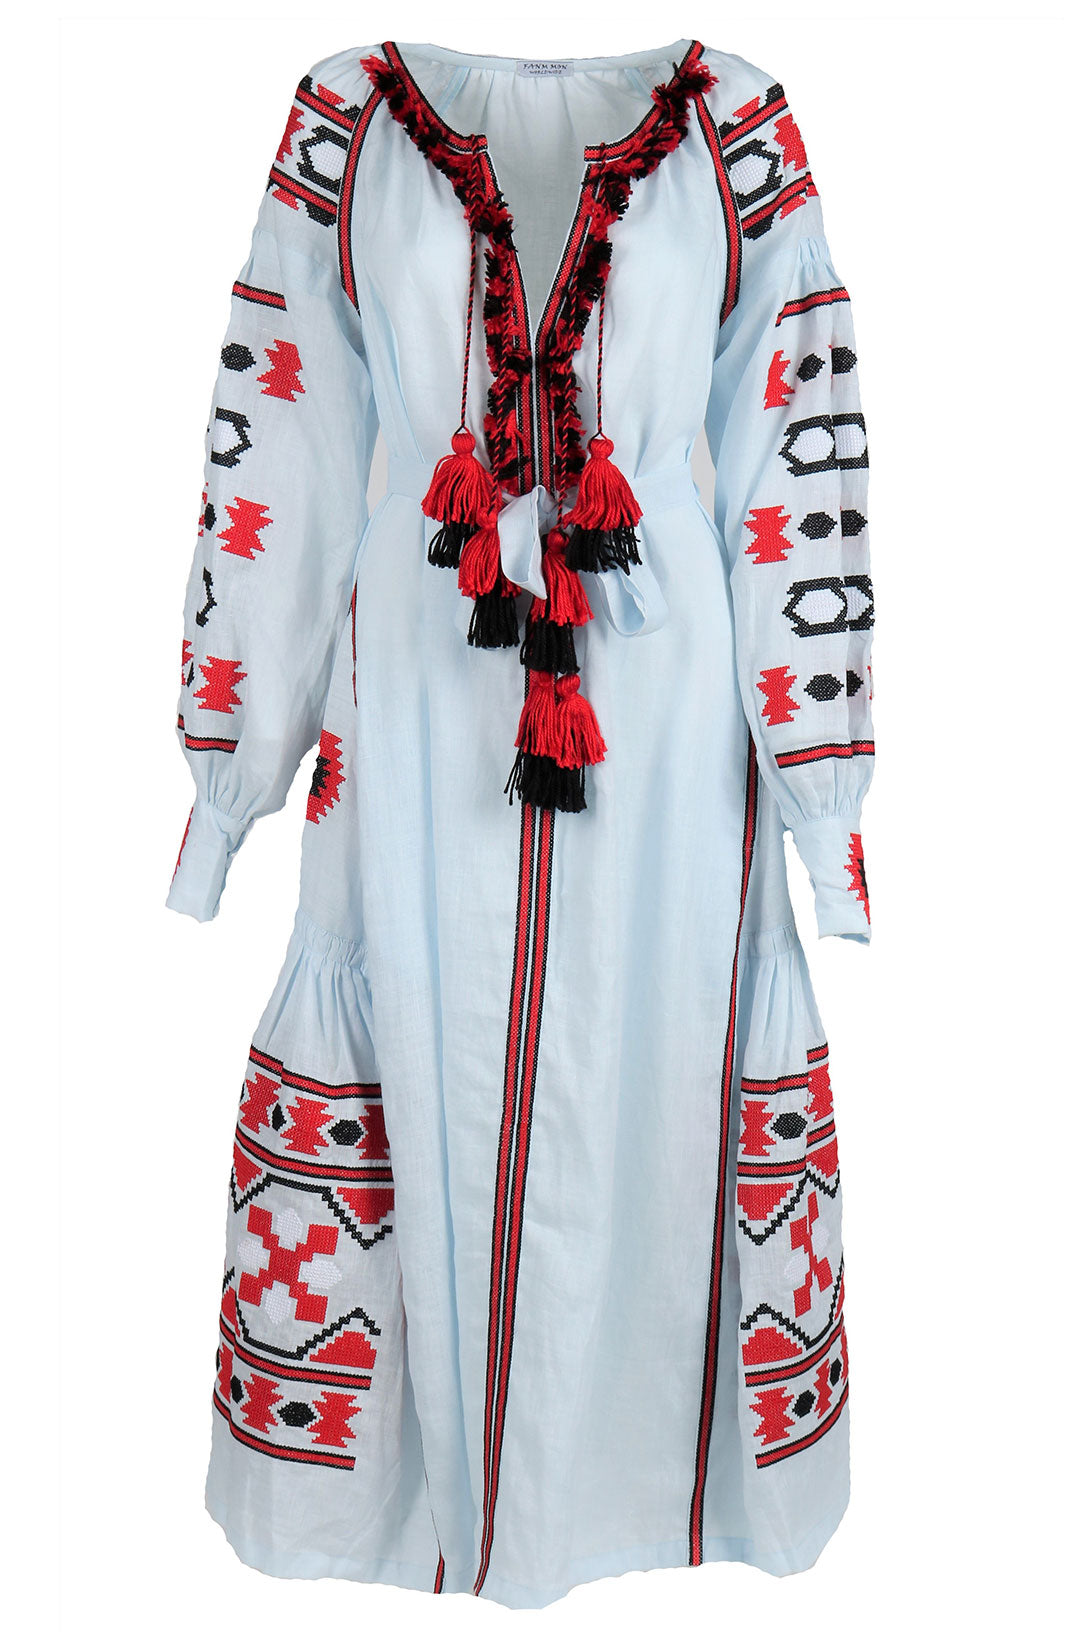 Fanm Mon Blue Linen Red Black Geometric Embroidery Vyshyvanka MIDI Dress MD0113